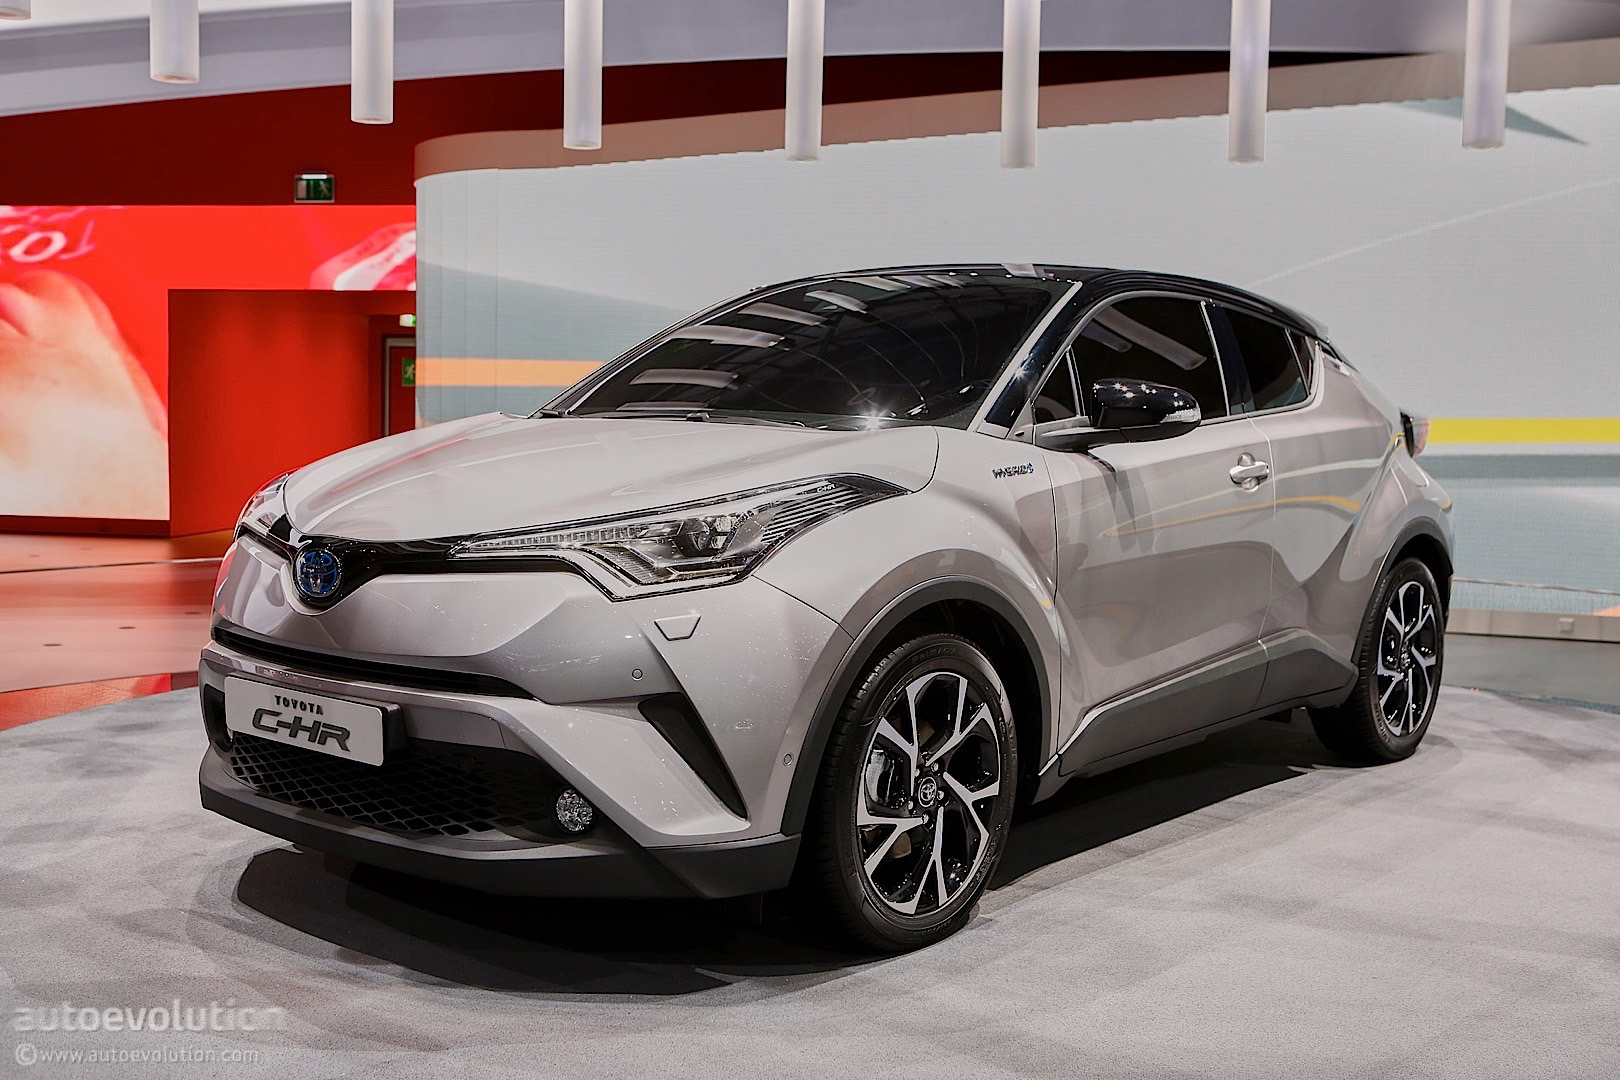 toyota puts its creative pants on for geneva with the c hr crossover autoevolution. Black Bedroom Furniture Sets. Home Design Ideas